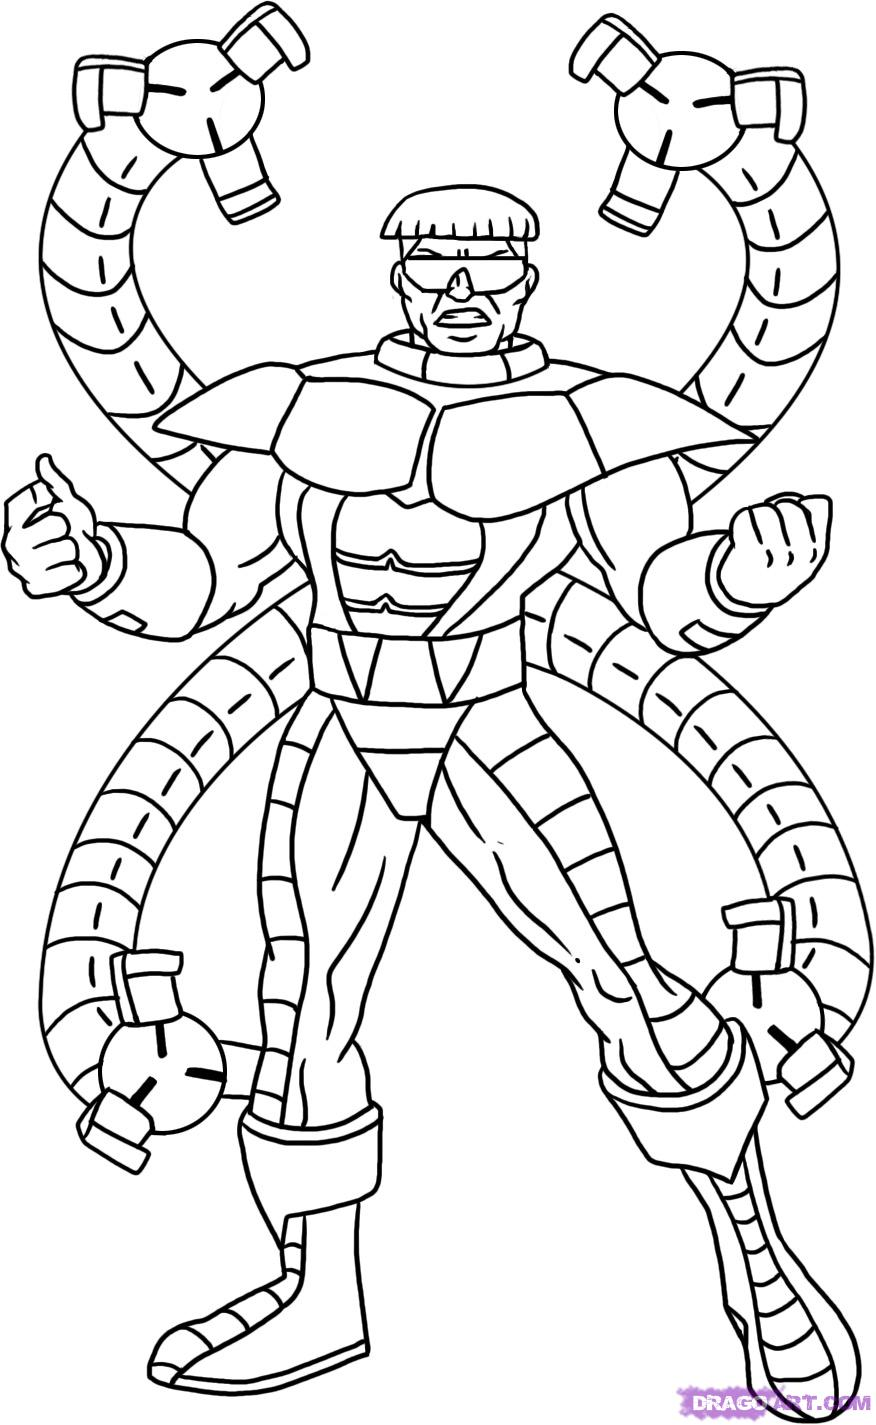 marvel colouring sheets marvel coloring pages free download on clipartmag marvel colouring sheets